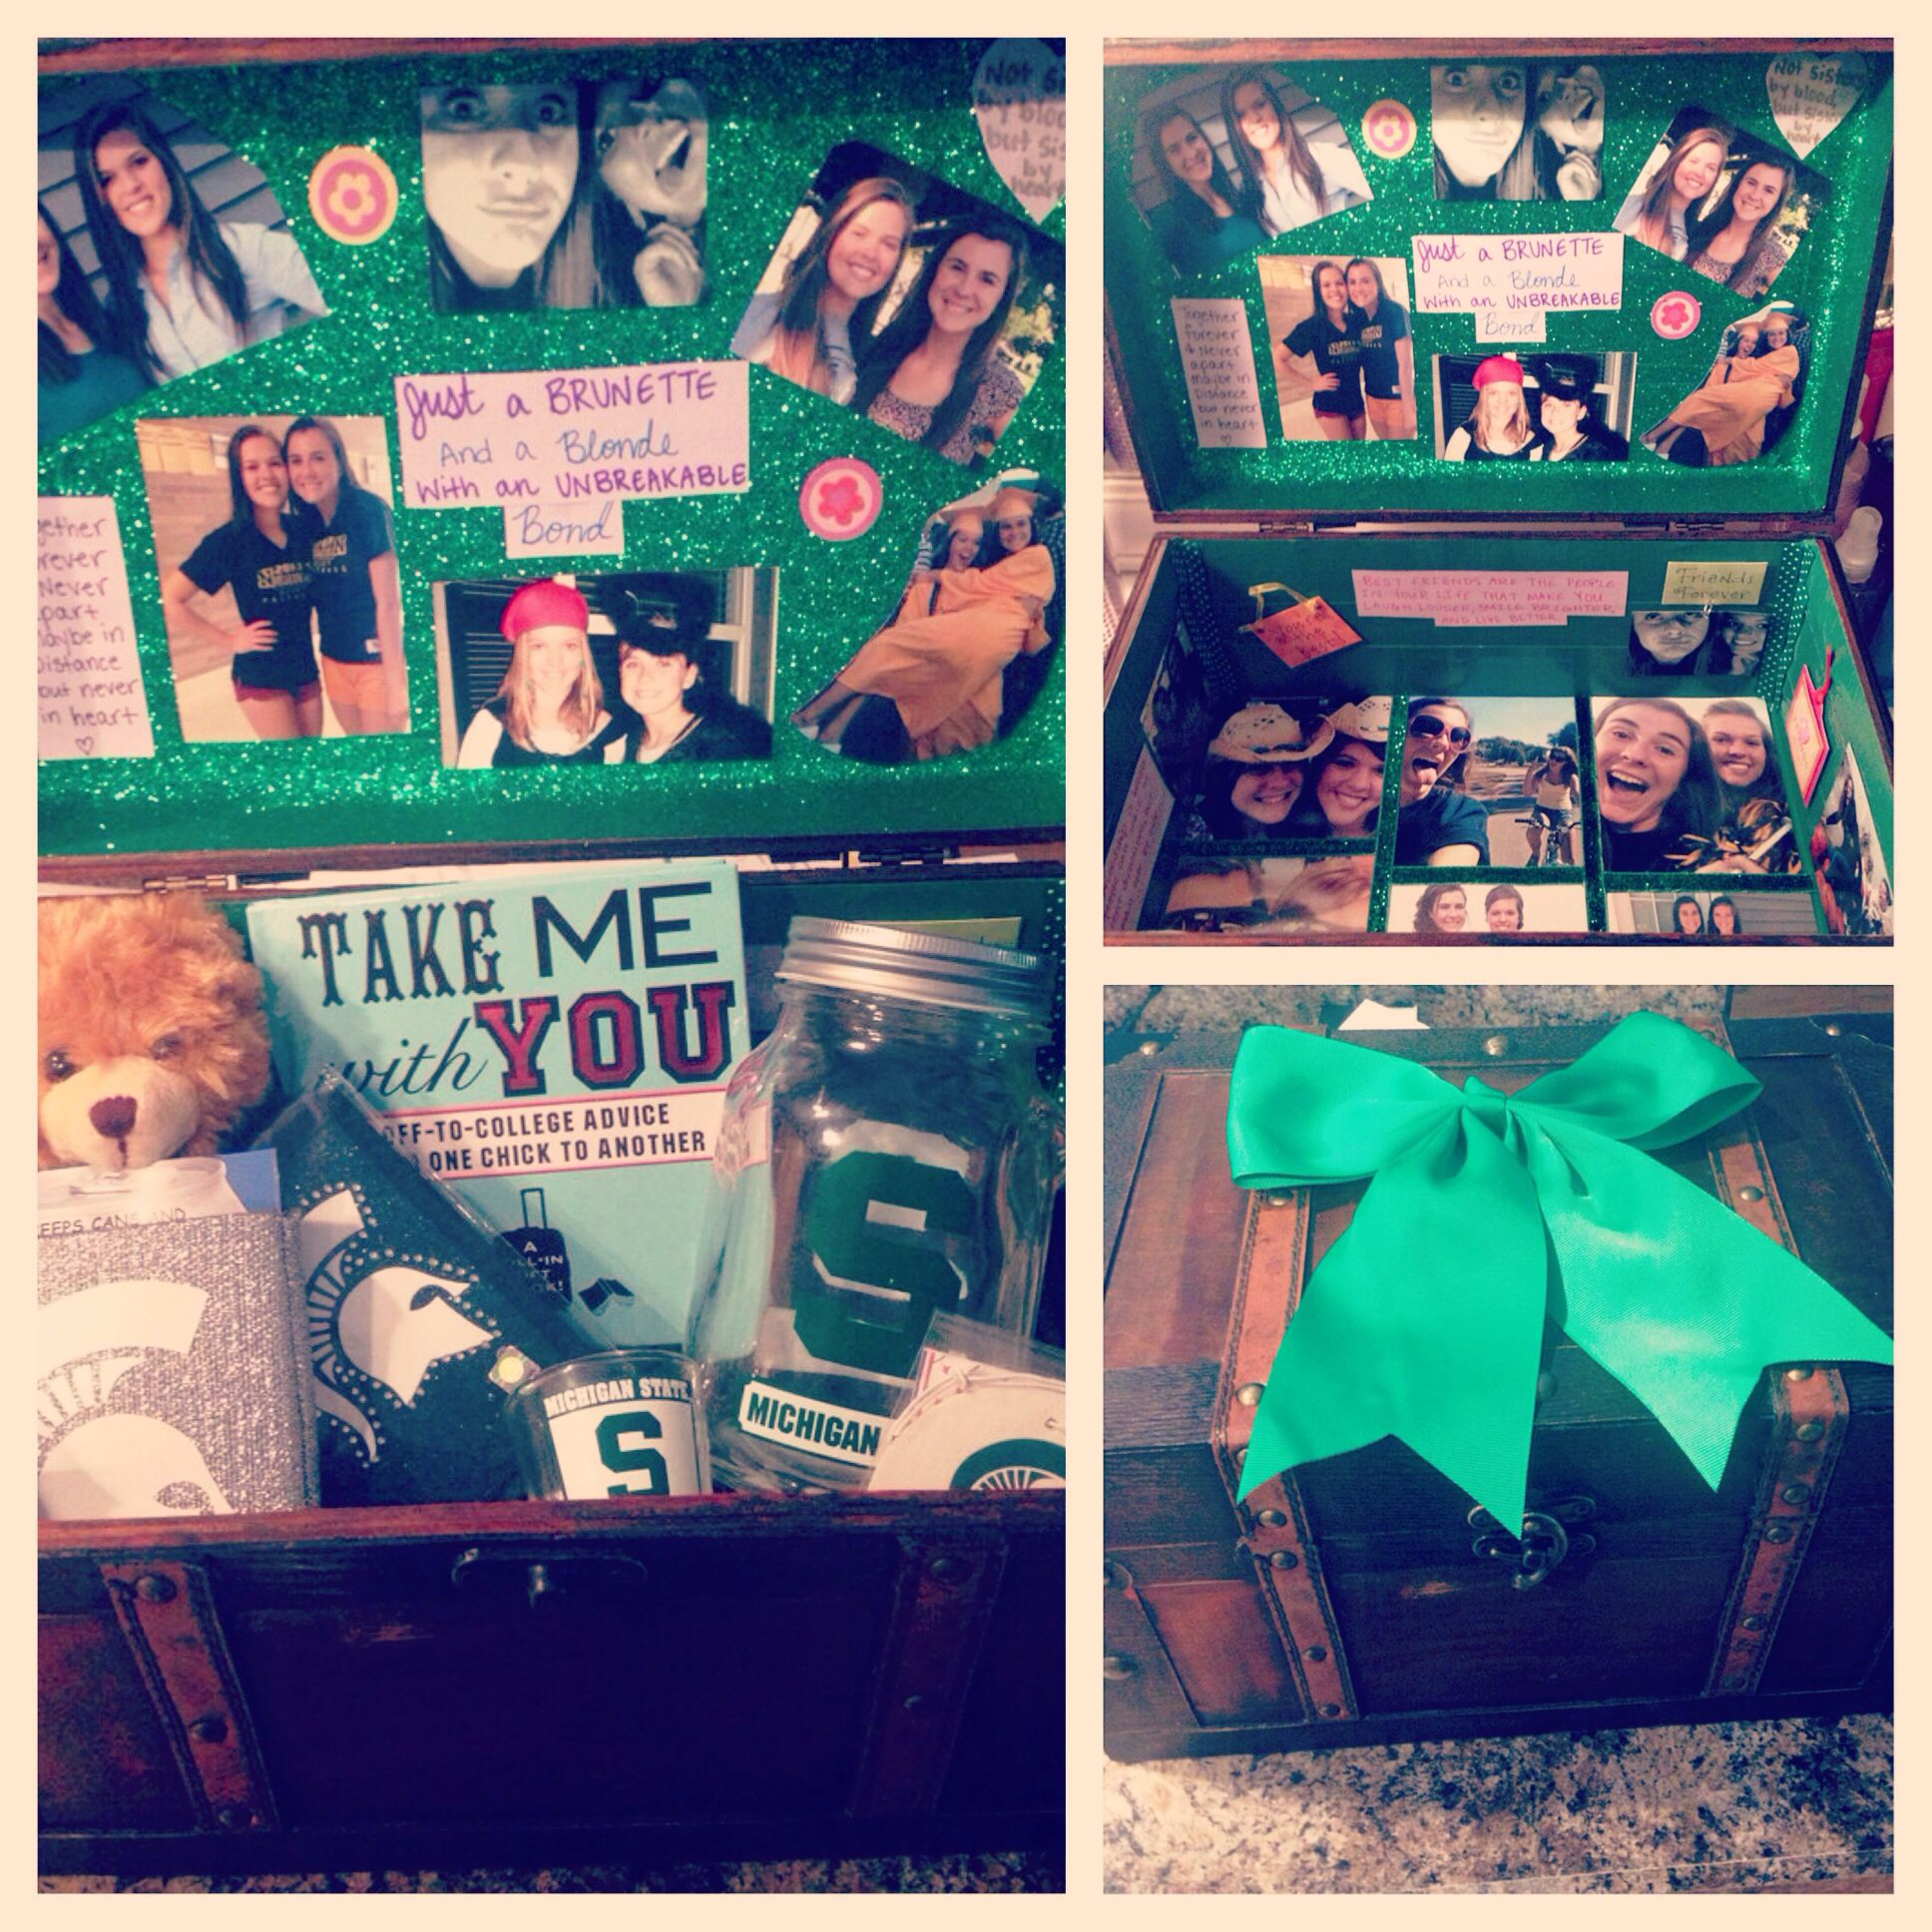 Memory Box For A Going Away Gift #memorybox #MSU #bestfriends #distance